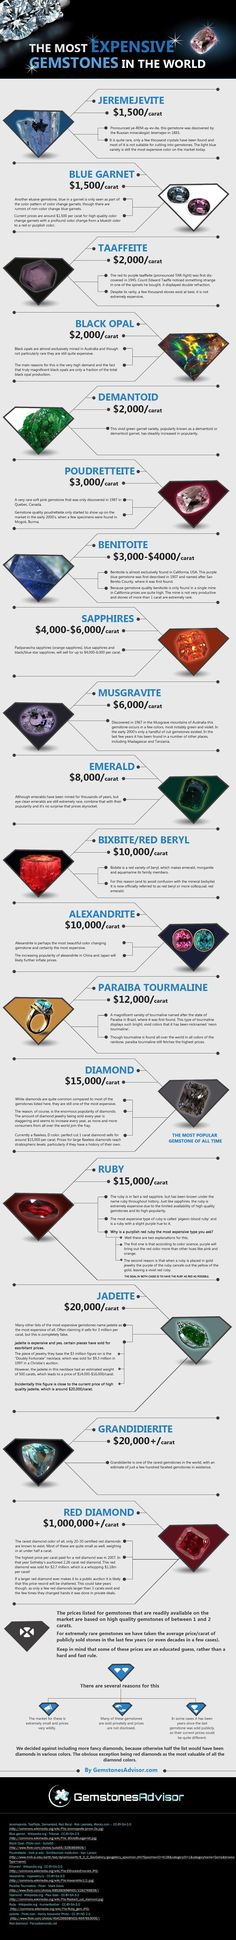 The Most Expensive Gemstones in the World Infographic - Le gemme più costose al mondo